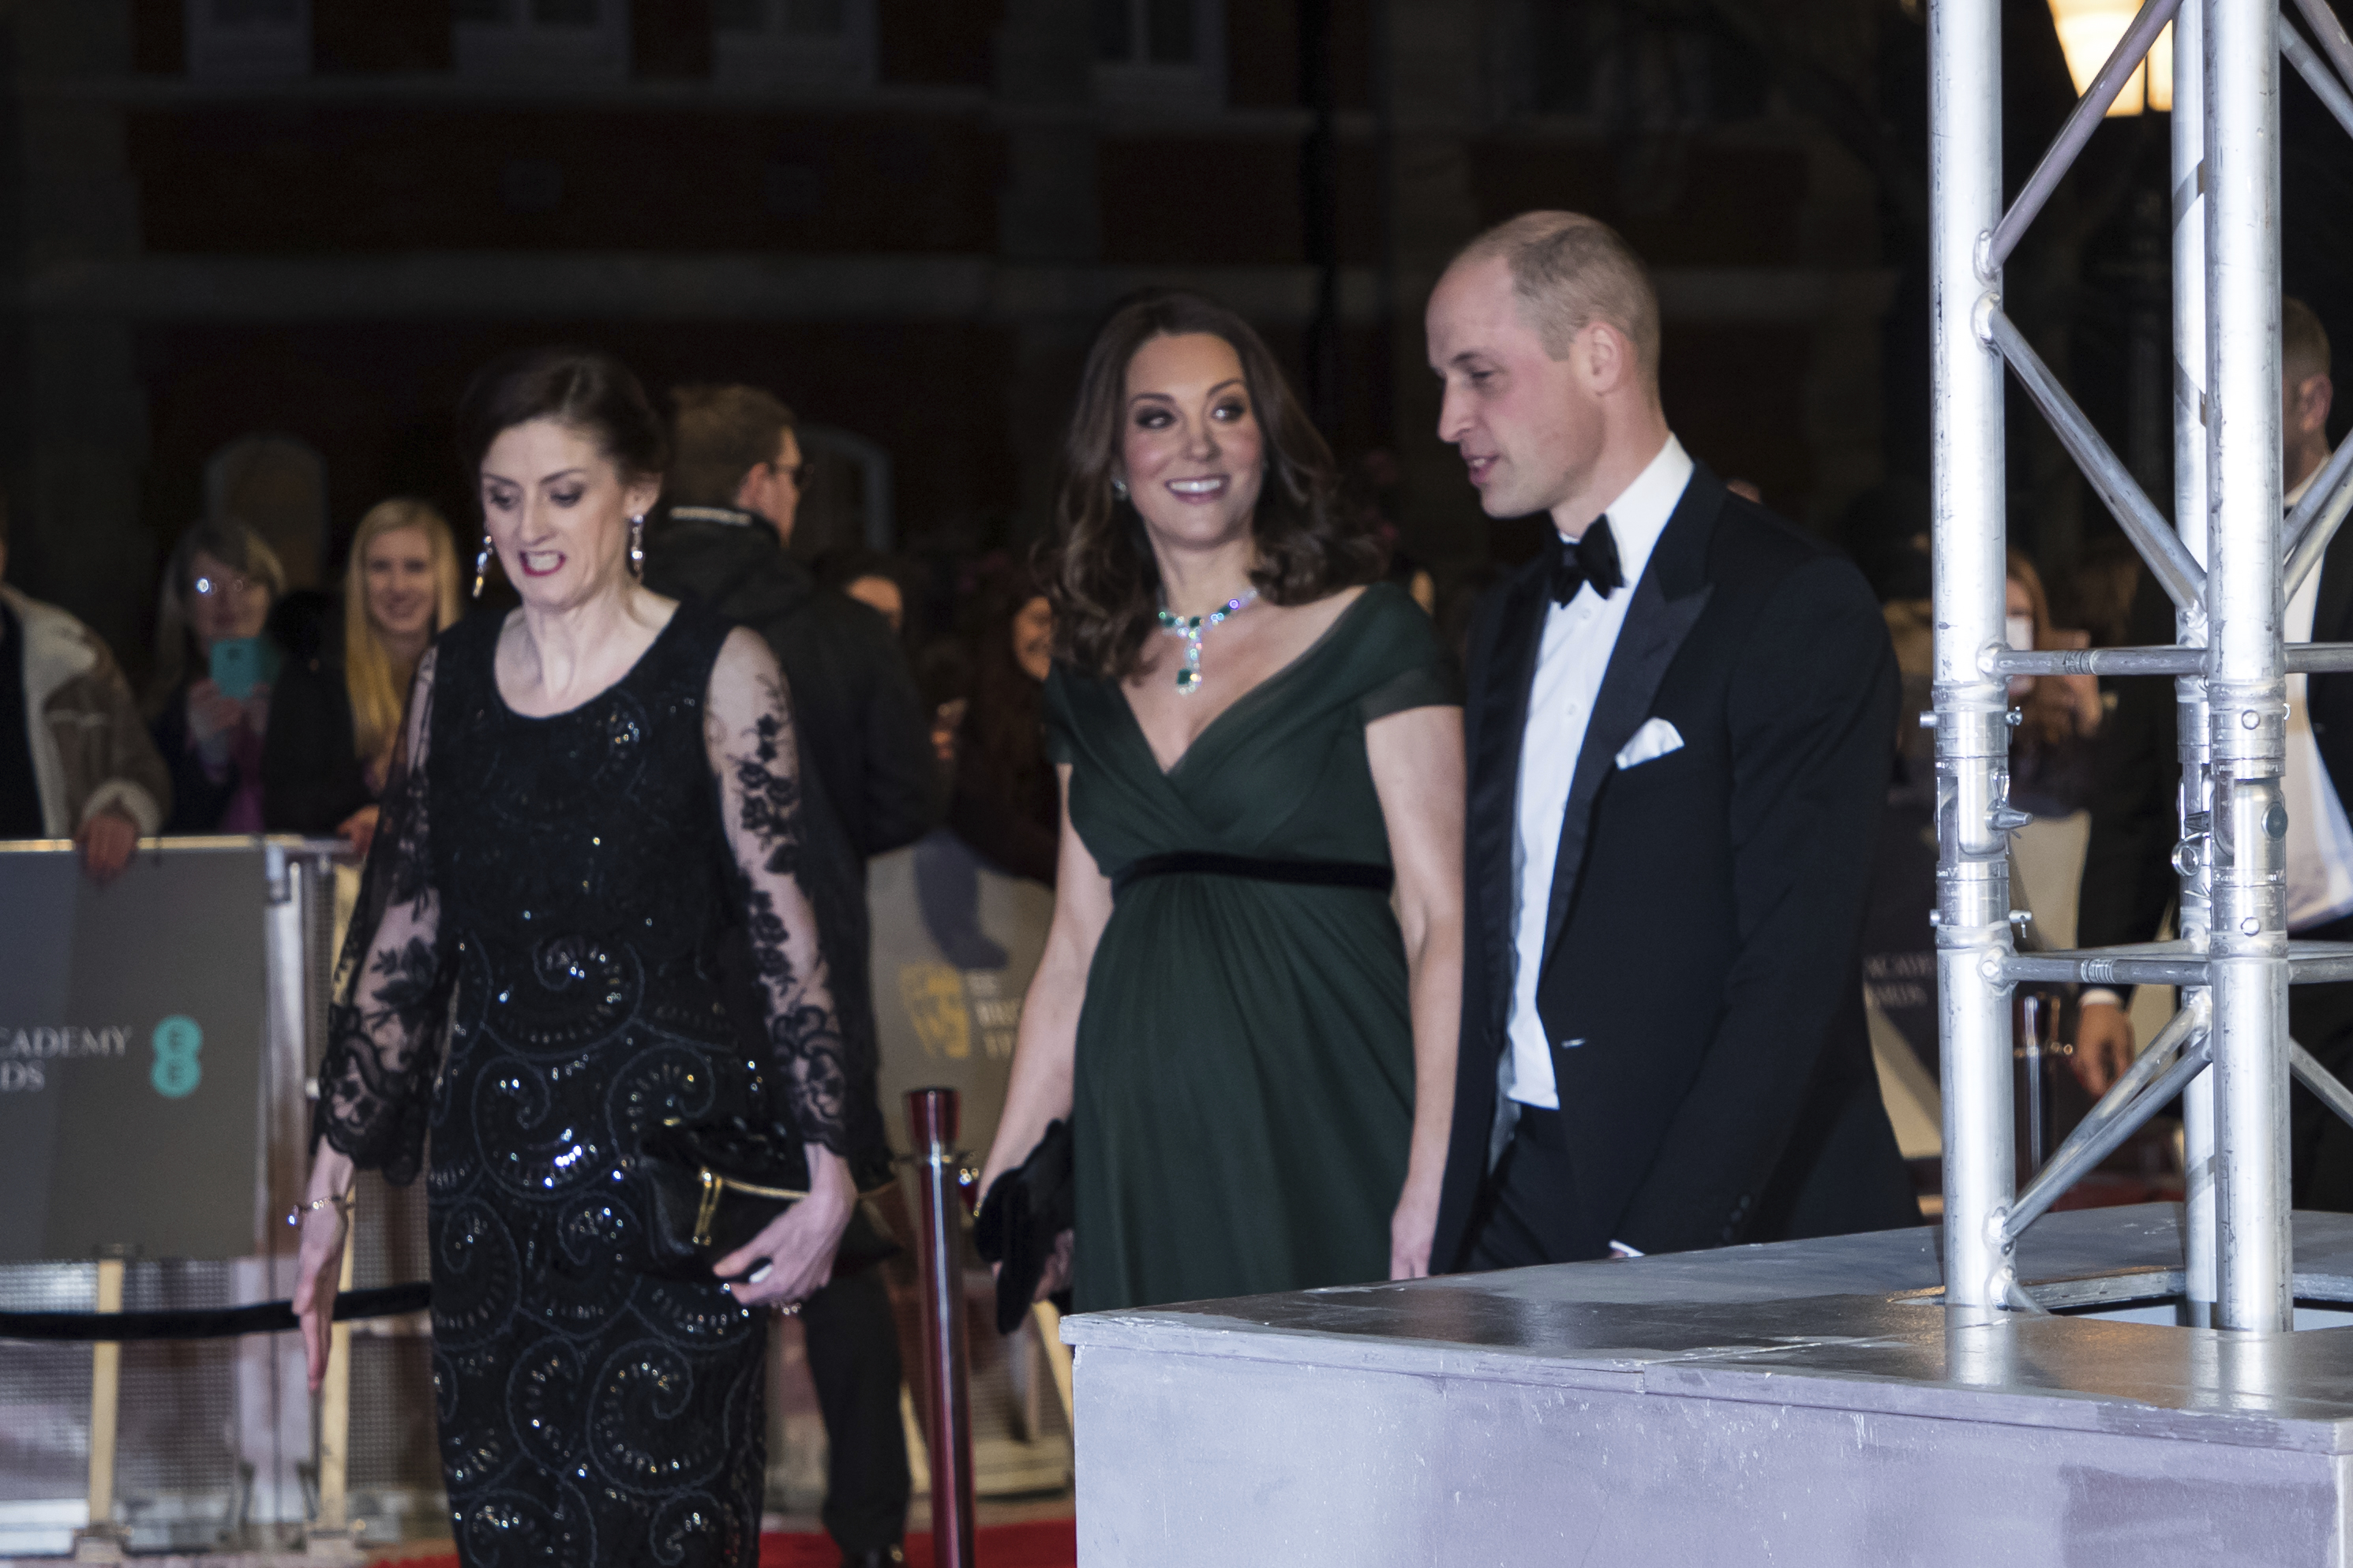 <div class='meta'><div class='origin-logo' data-origin='none'></div><span class='caption-text' data-credit='Vianney Le Caer/Invision/AP'>Britain's Kate, the Duchess of Cambridge and William, Duke of Cambridge arrive with Chief Executive of BAFTA Amanda Berry at the BAFTA Awards 2018 in London, Sunday, Feb. 18, 2018.</span></div>